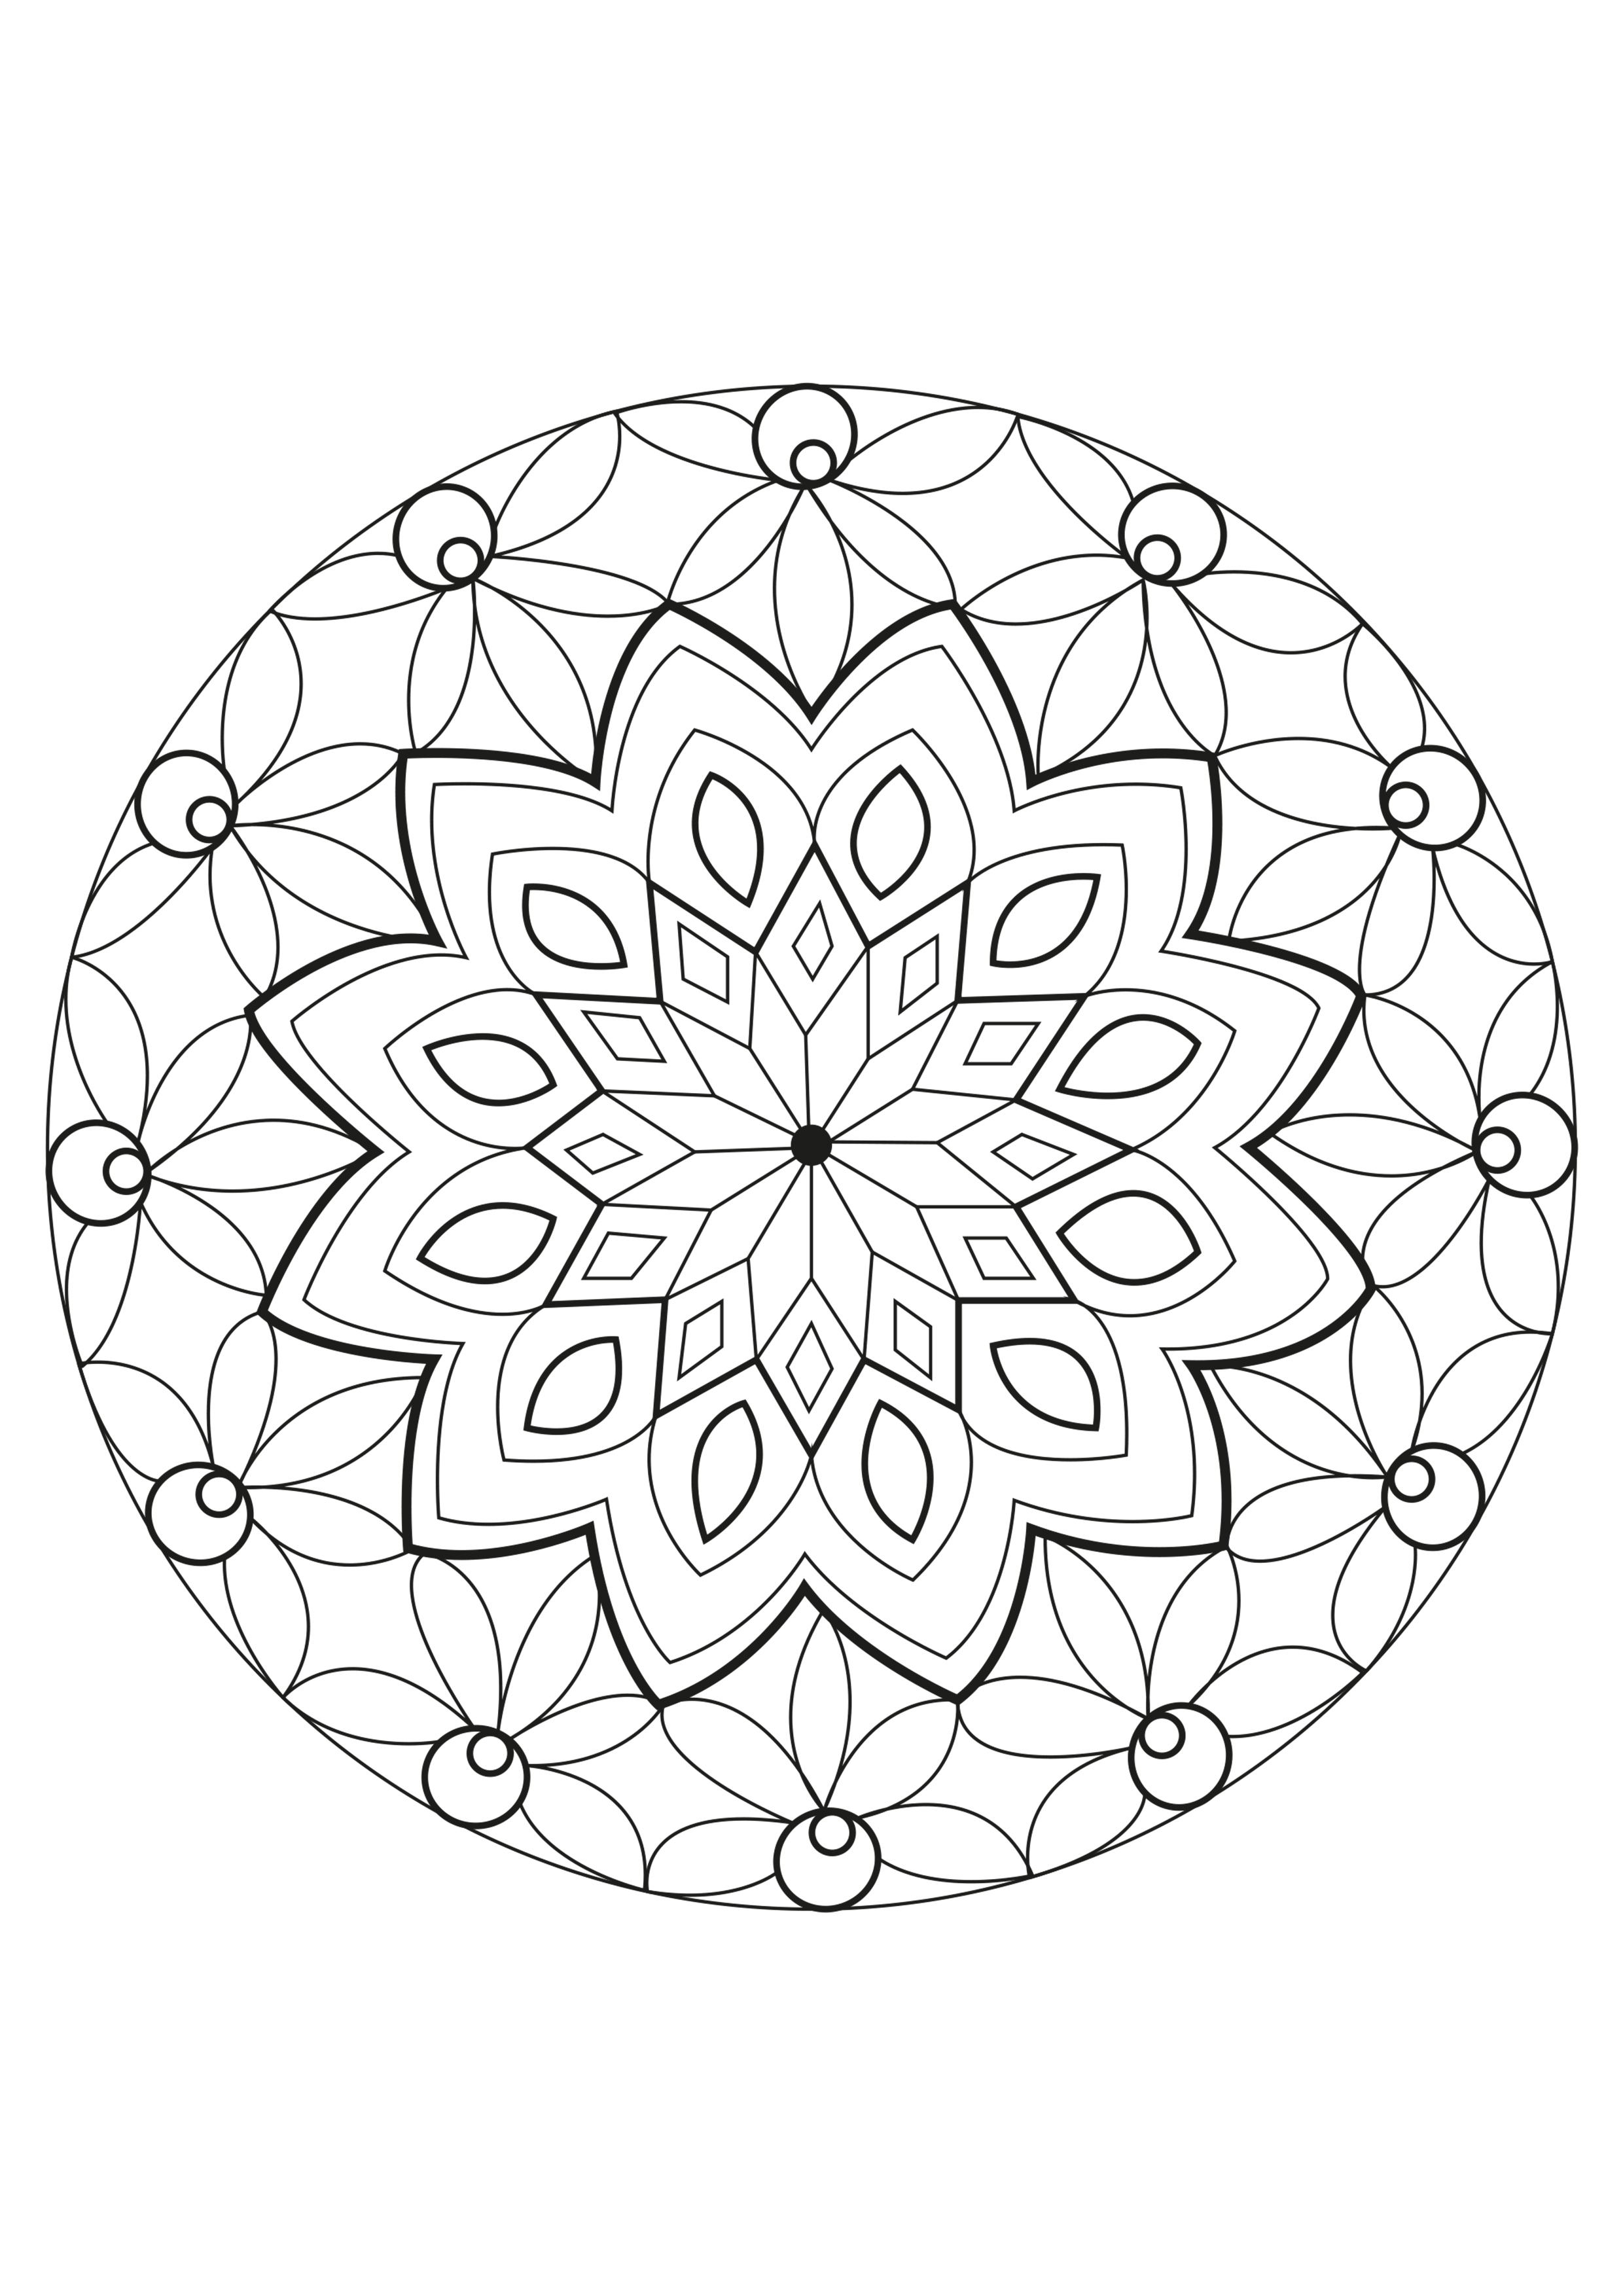 facile mandala magique coloriage mandalas coloriages pour enfants. Black Bedroom Furniture Sets. Home Design Ideas